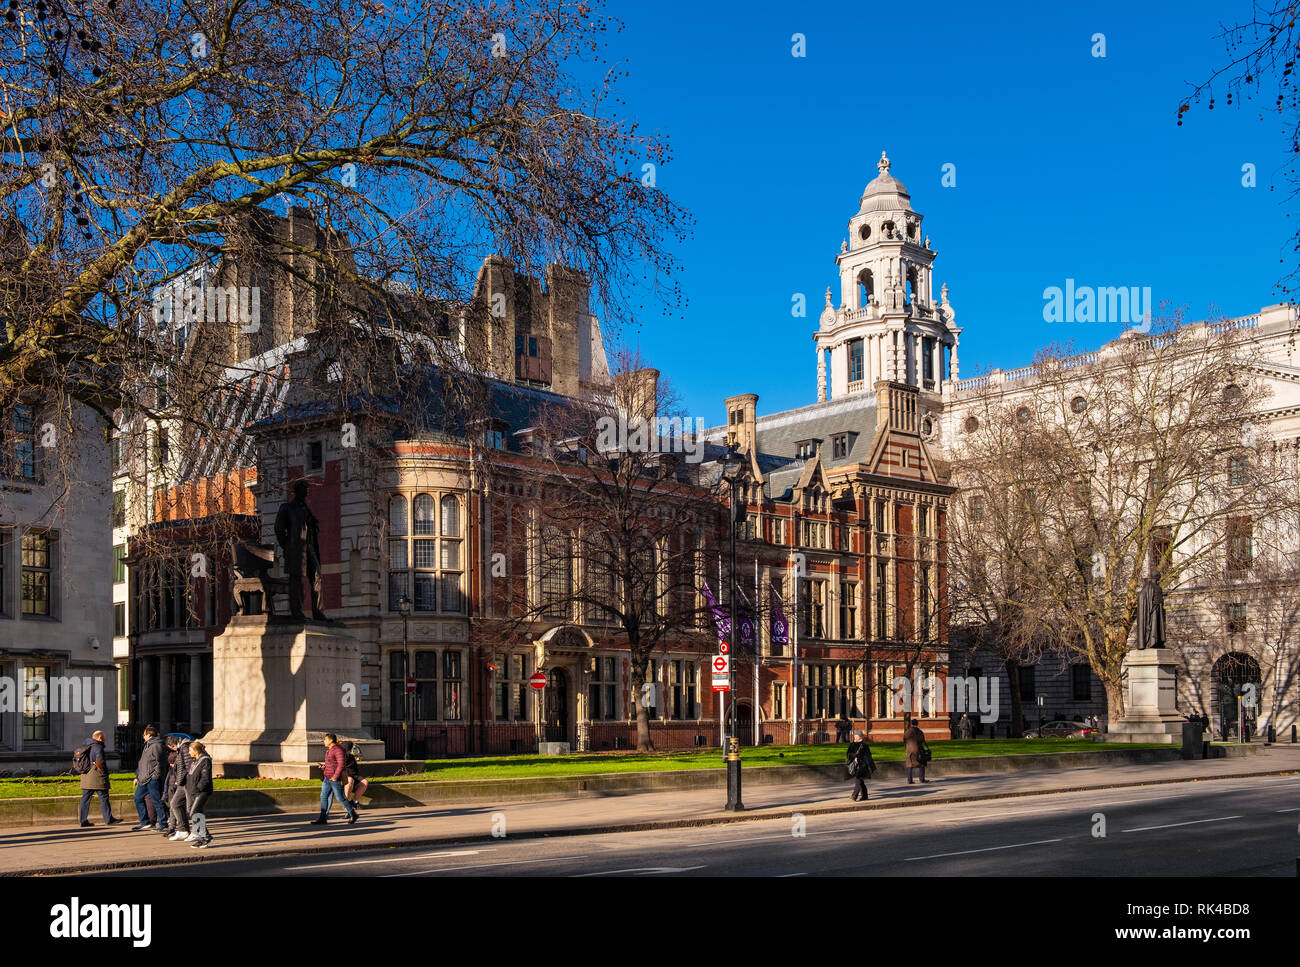 London, England / United Kingdom - 2019/01/28: Royal Institution of Chartered Surveyors - RICS - headquarters at the Parliament Square in the City of  Stock Photo